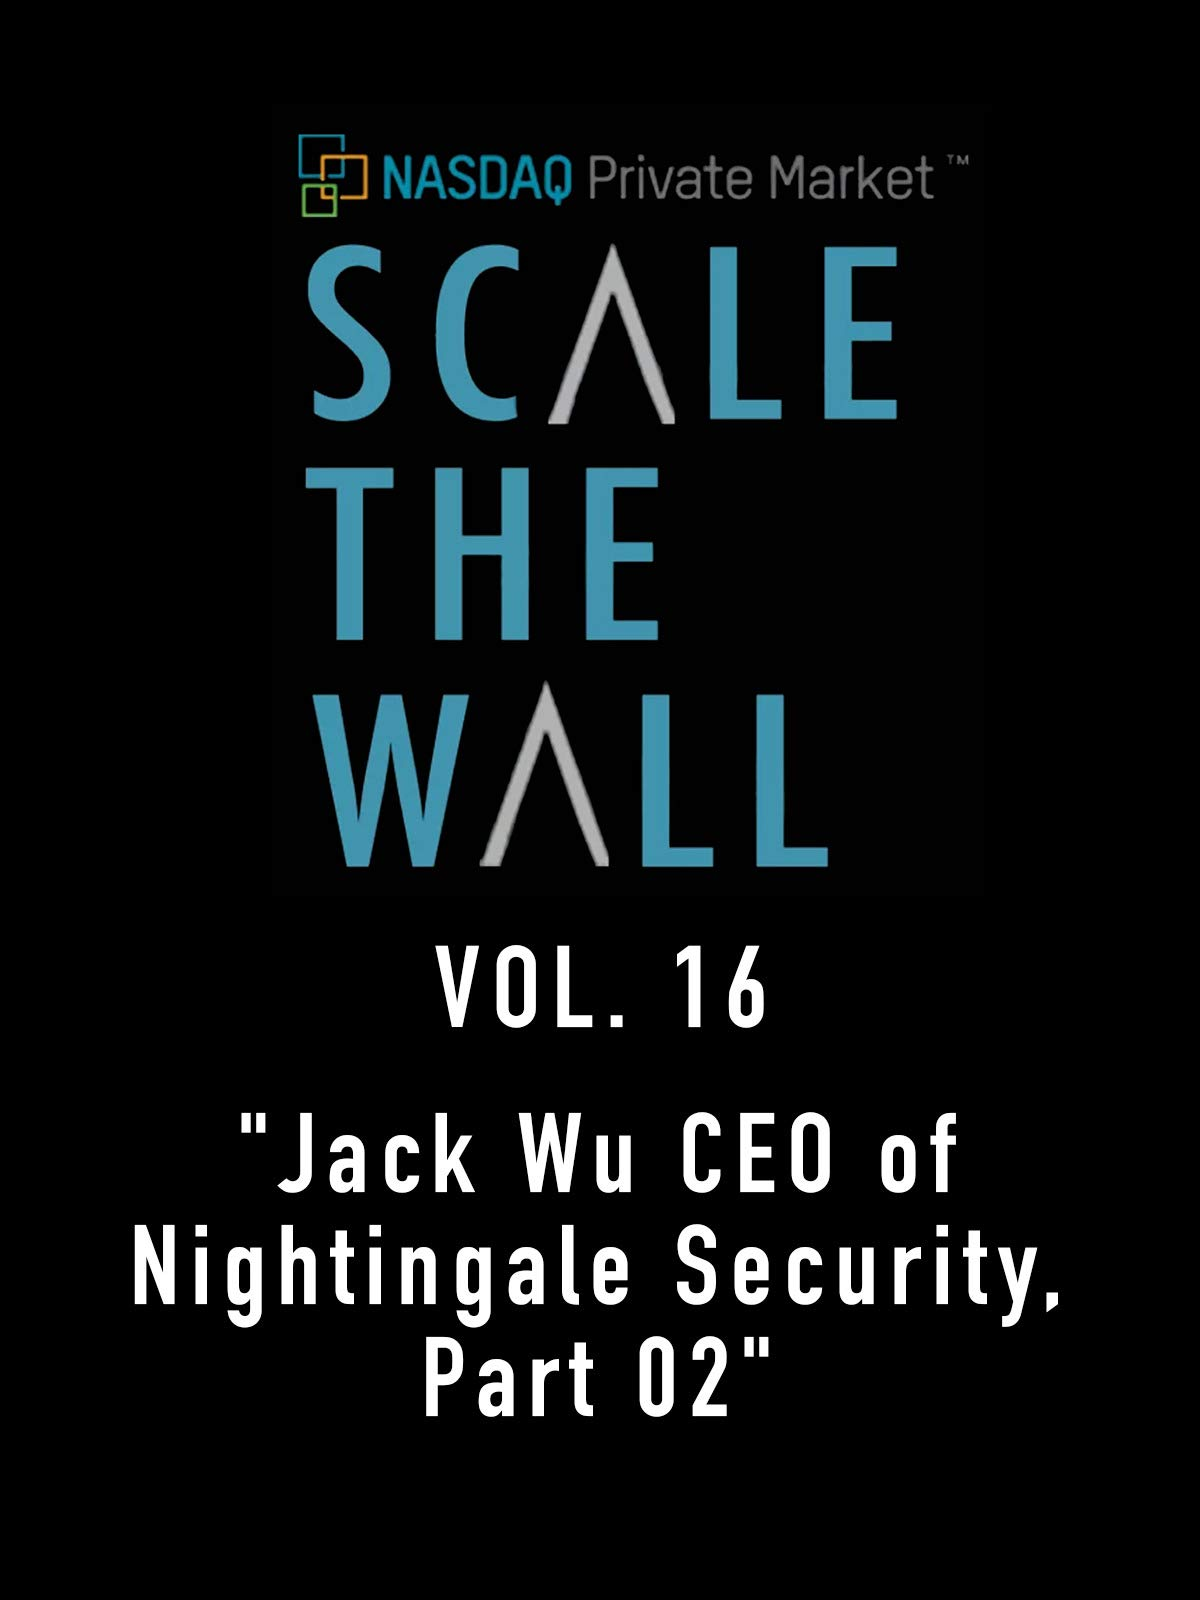 Scale the Wall Vol. 16